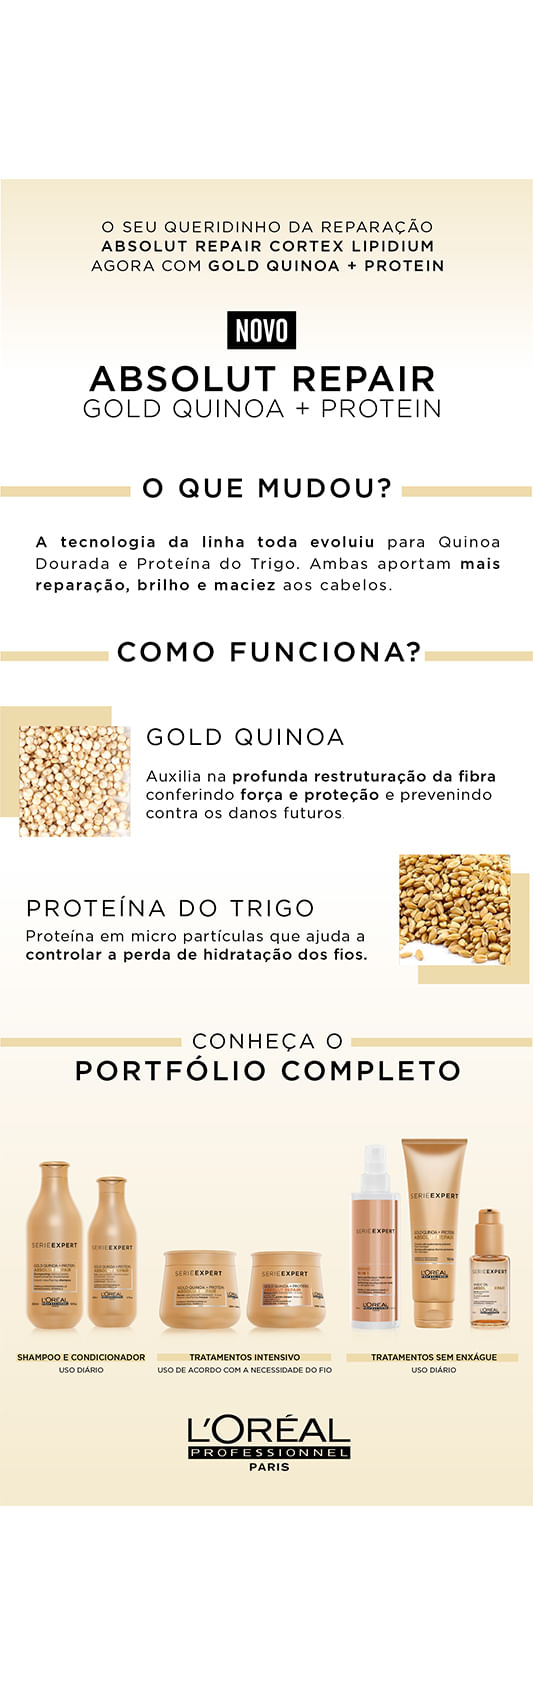 L'Oréal Professionnel Absolut Repair Gold Quinoa + Protein - Sérum